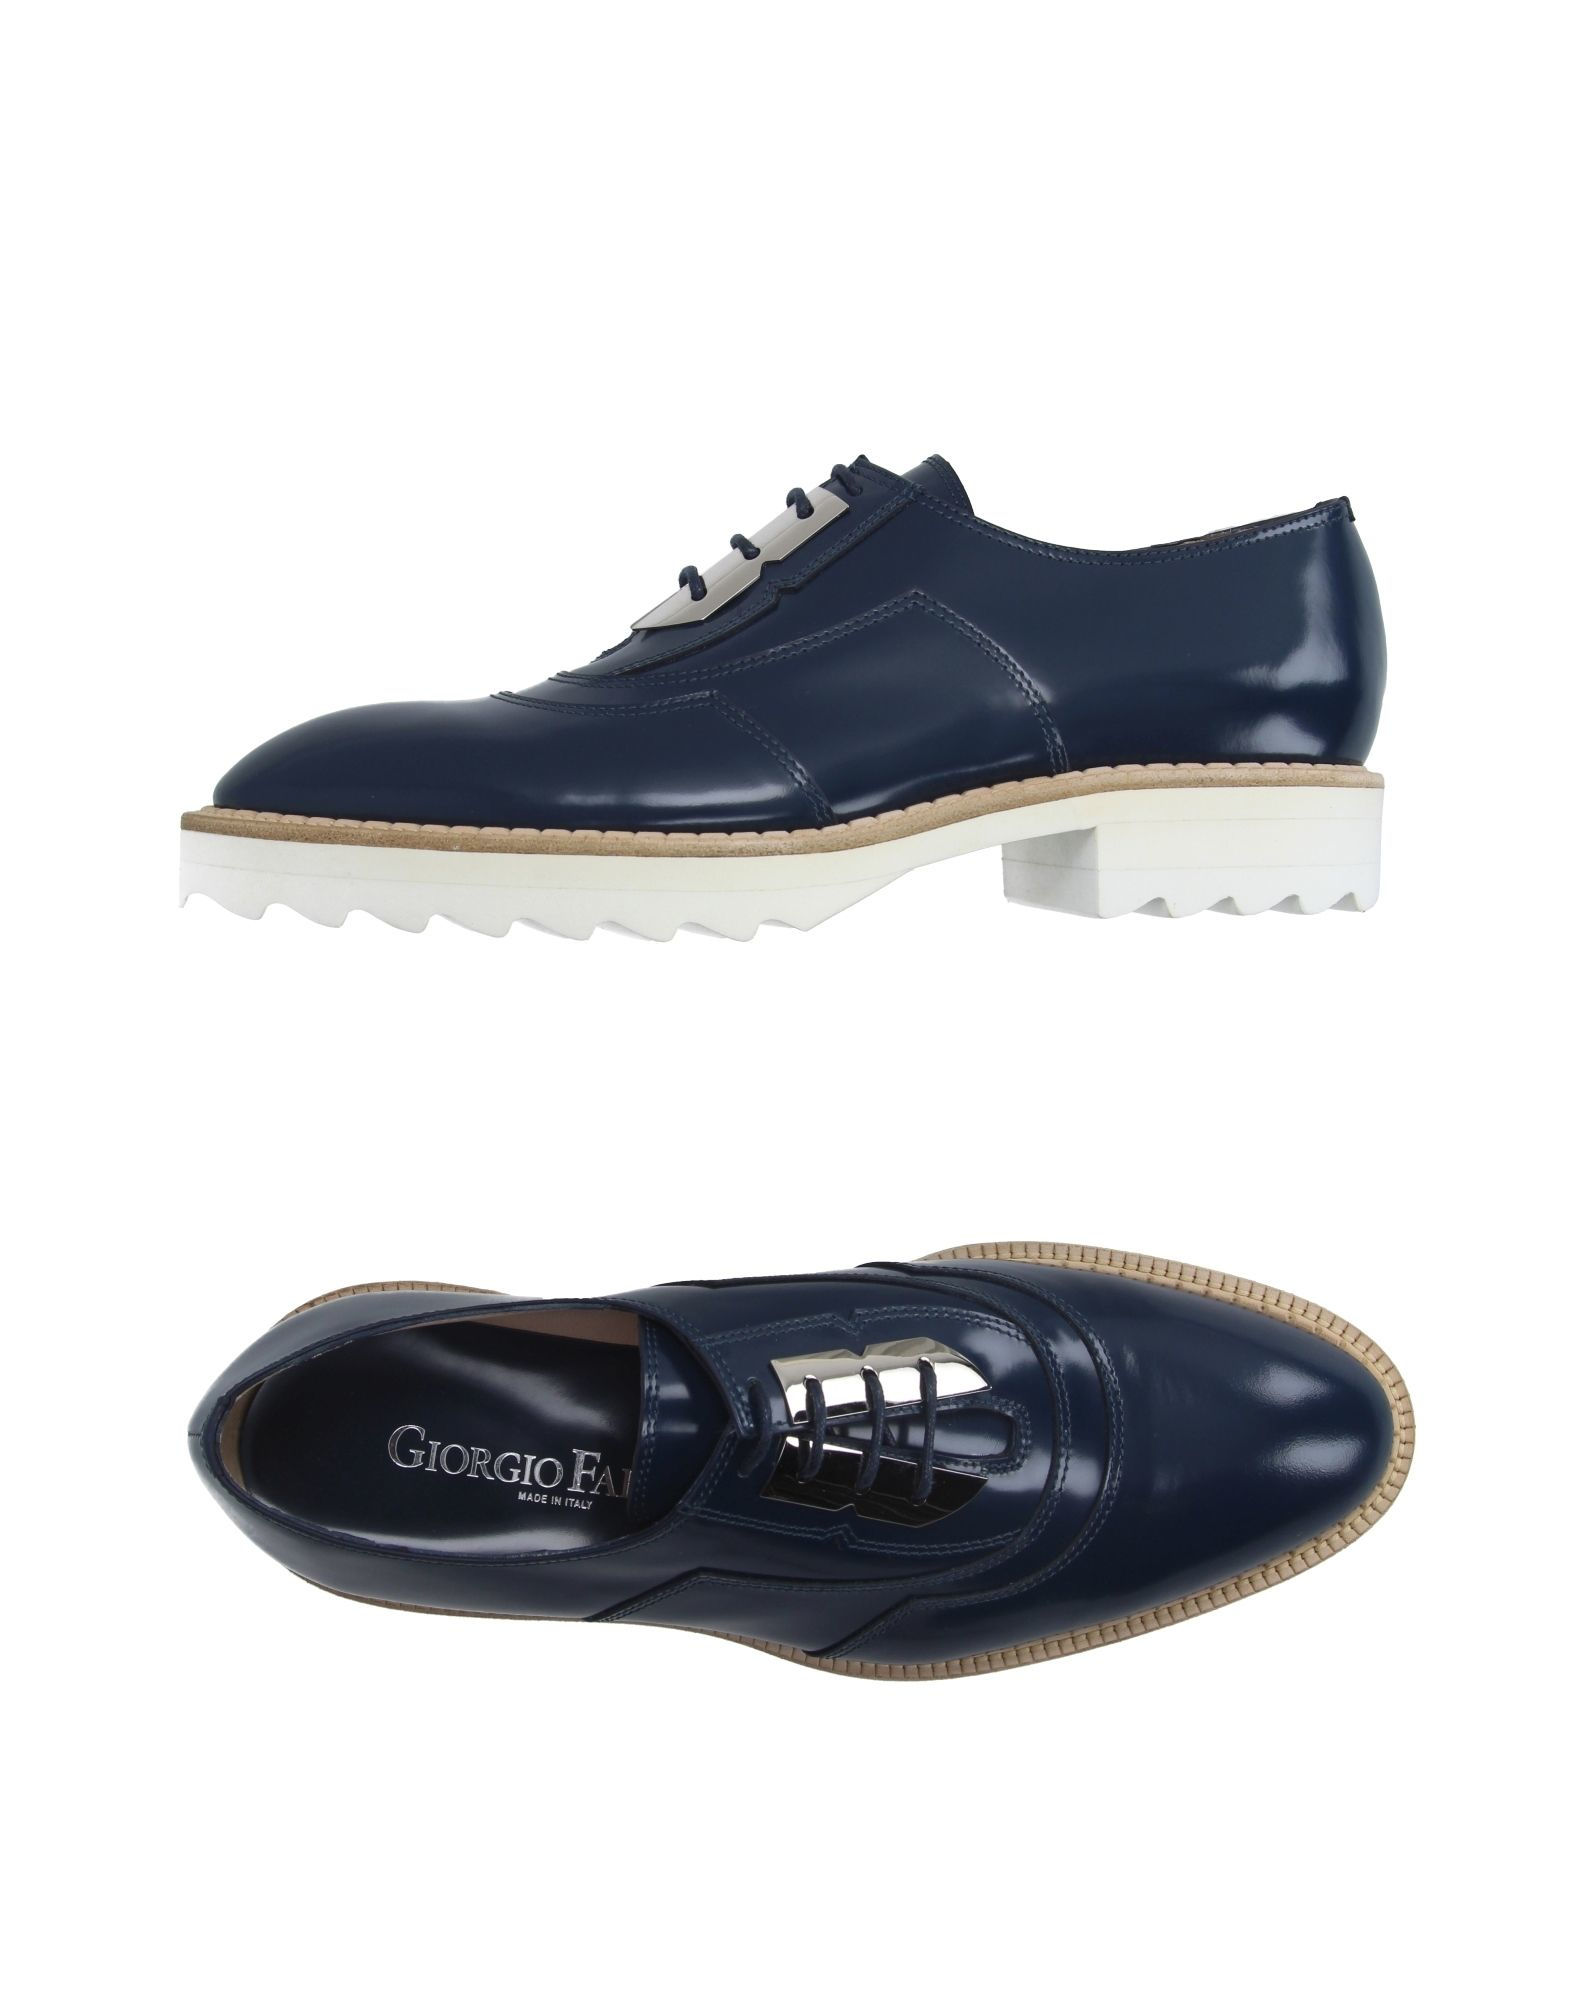 Giorgio Fabiani Mens Shoes